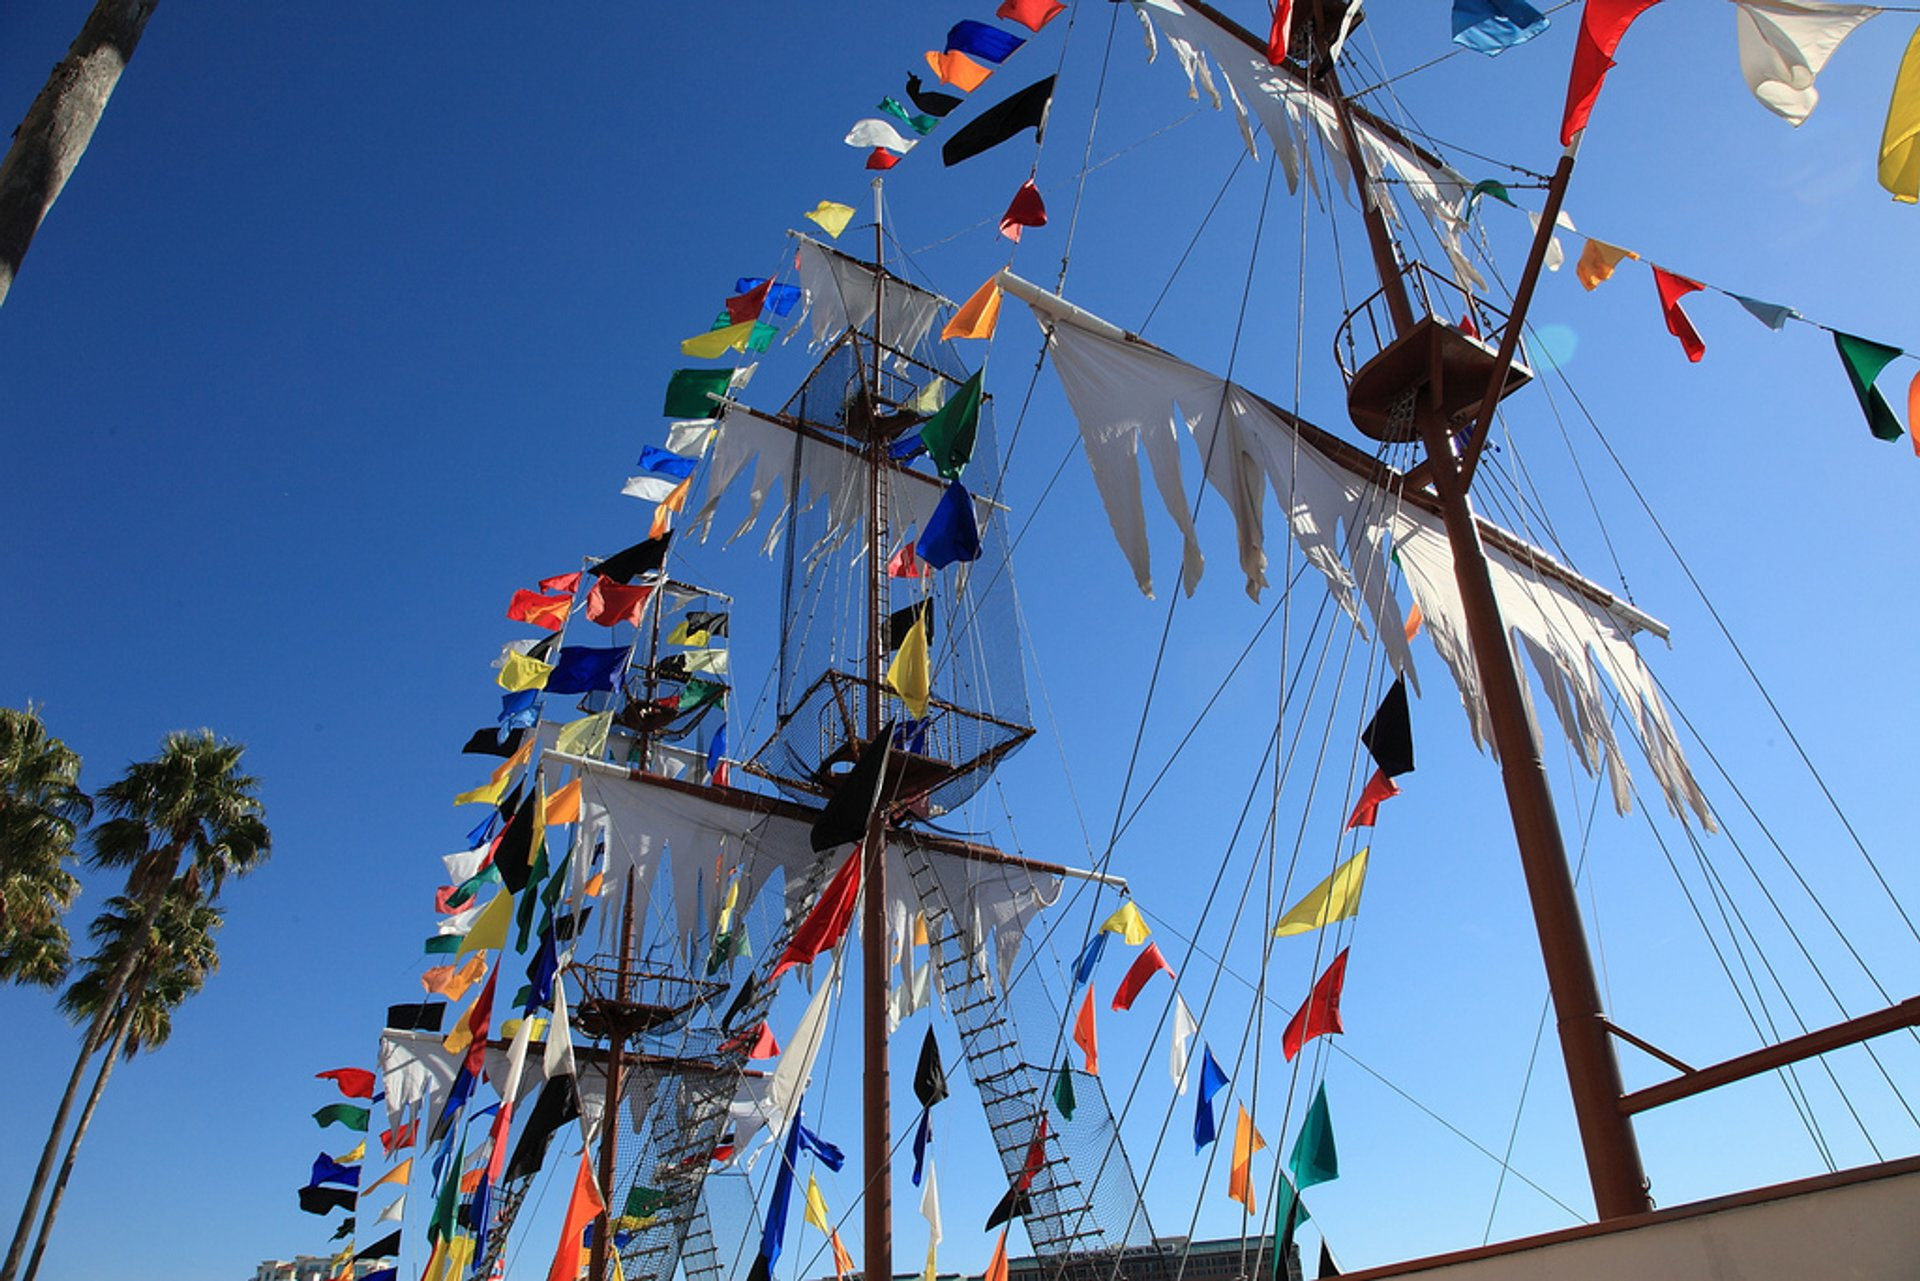 Gasparilla Pirate Fest in Florida - Best Season 2020